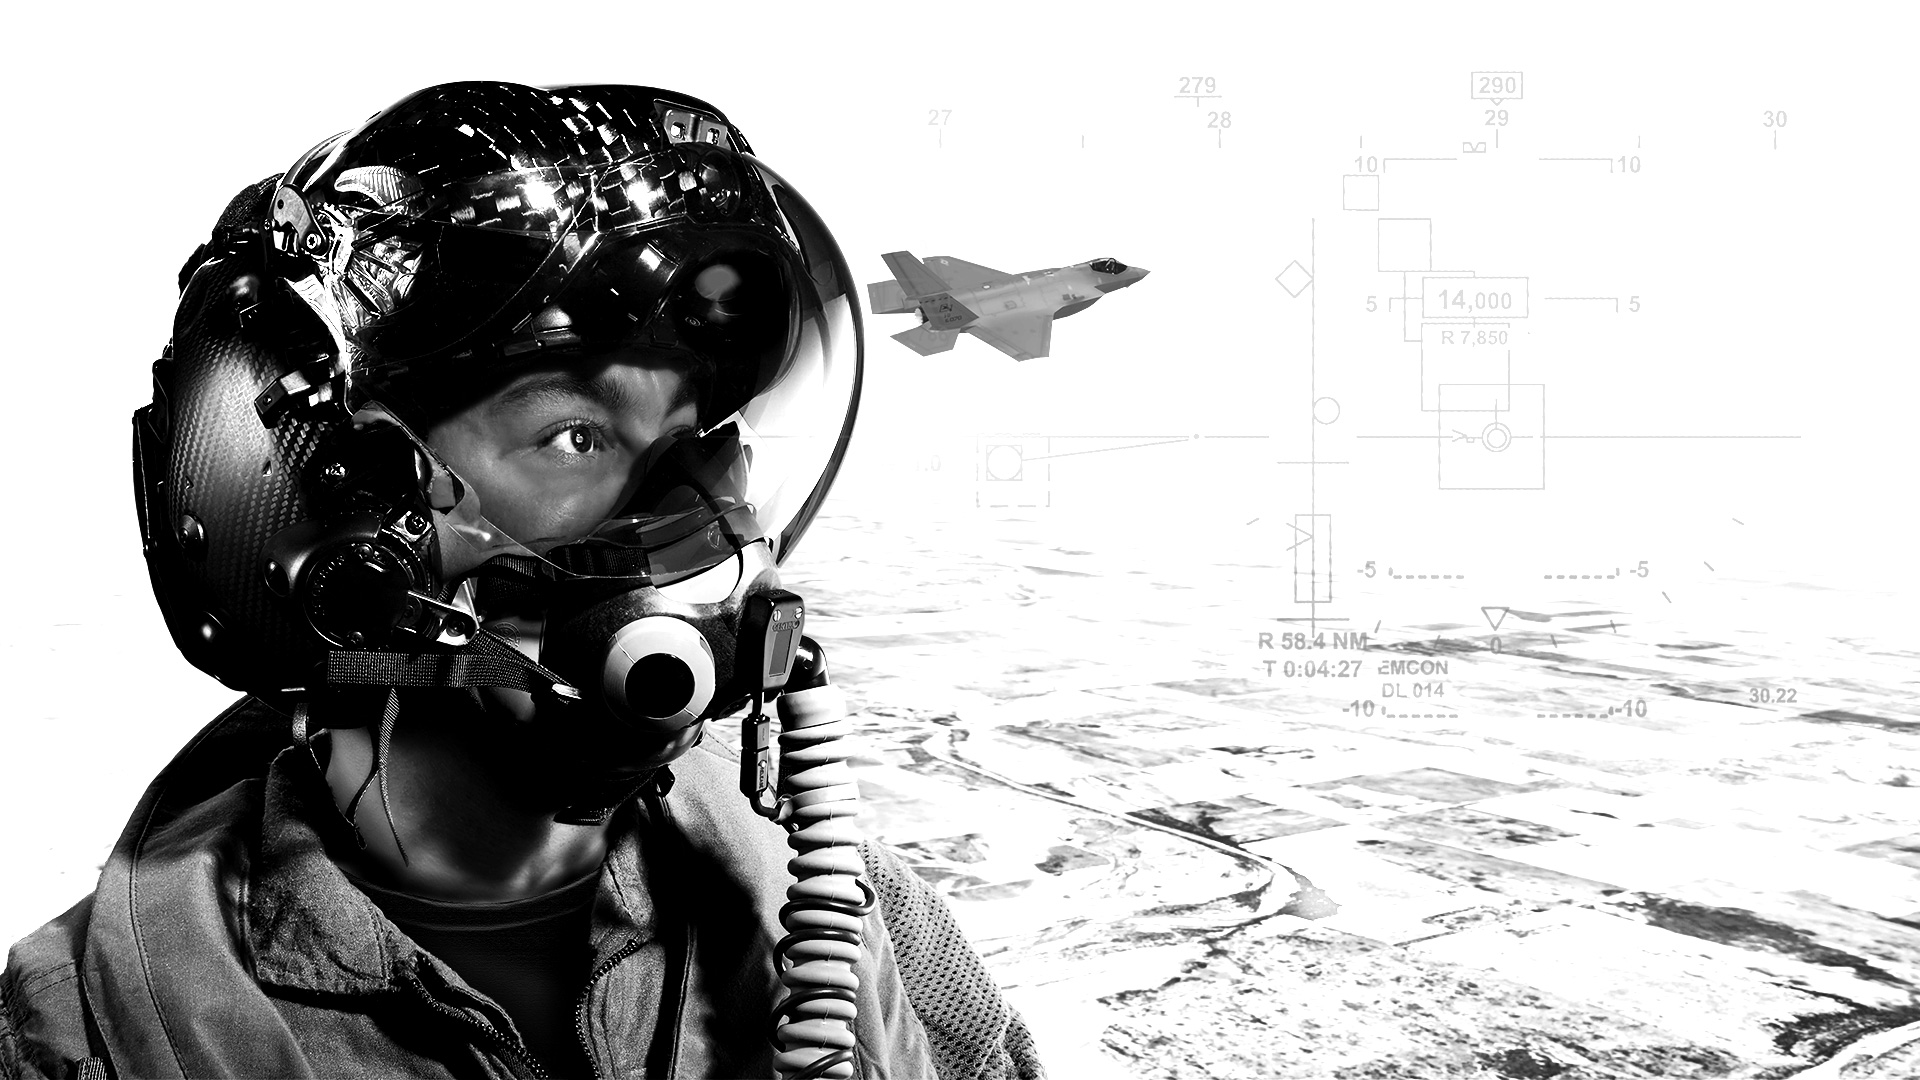 F-35 helmet with symbology